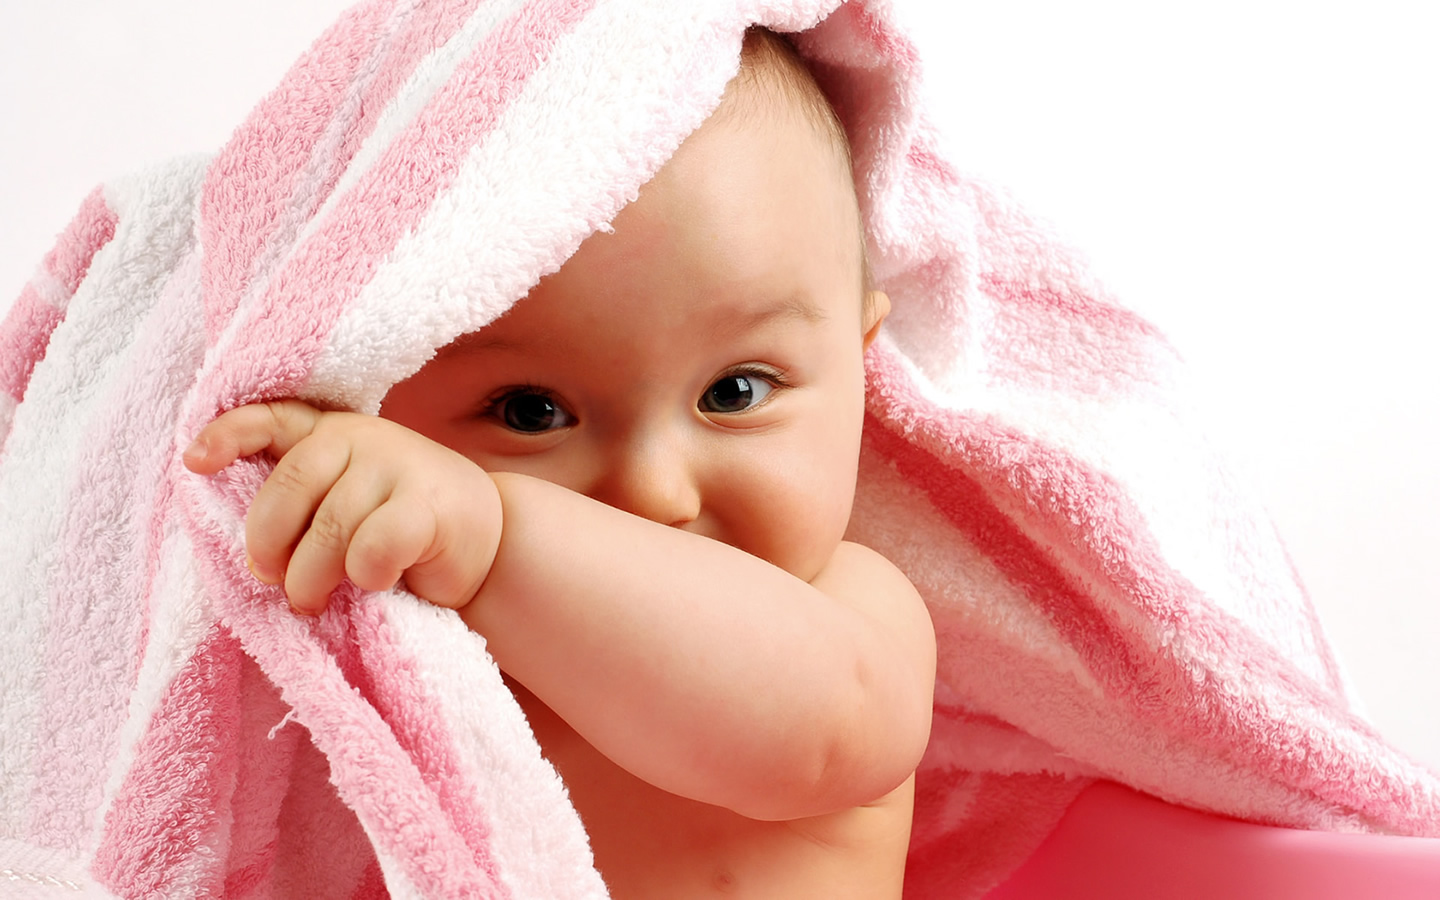 Baby-HD-wallpaper-wp4603972